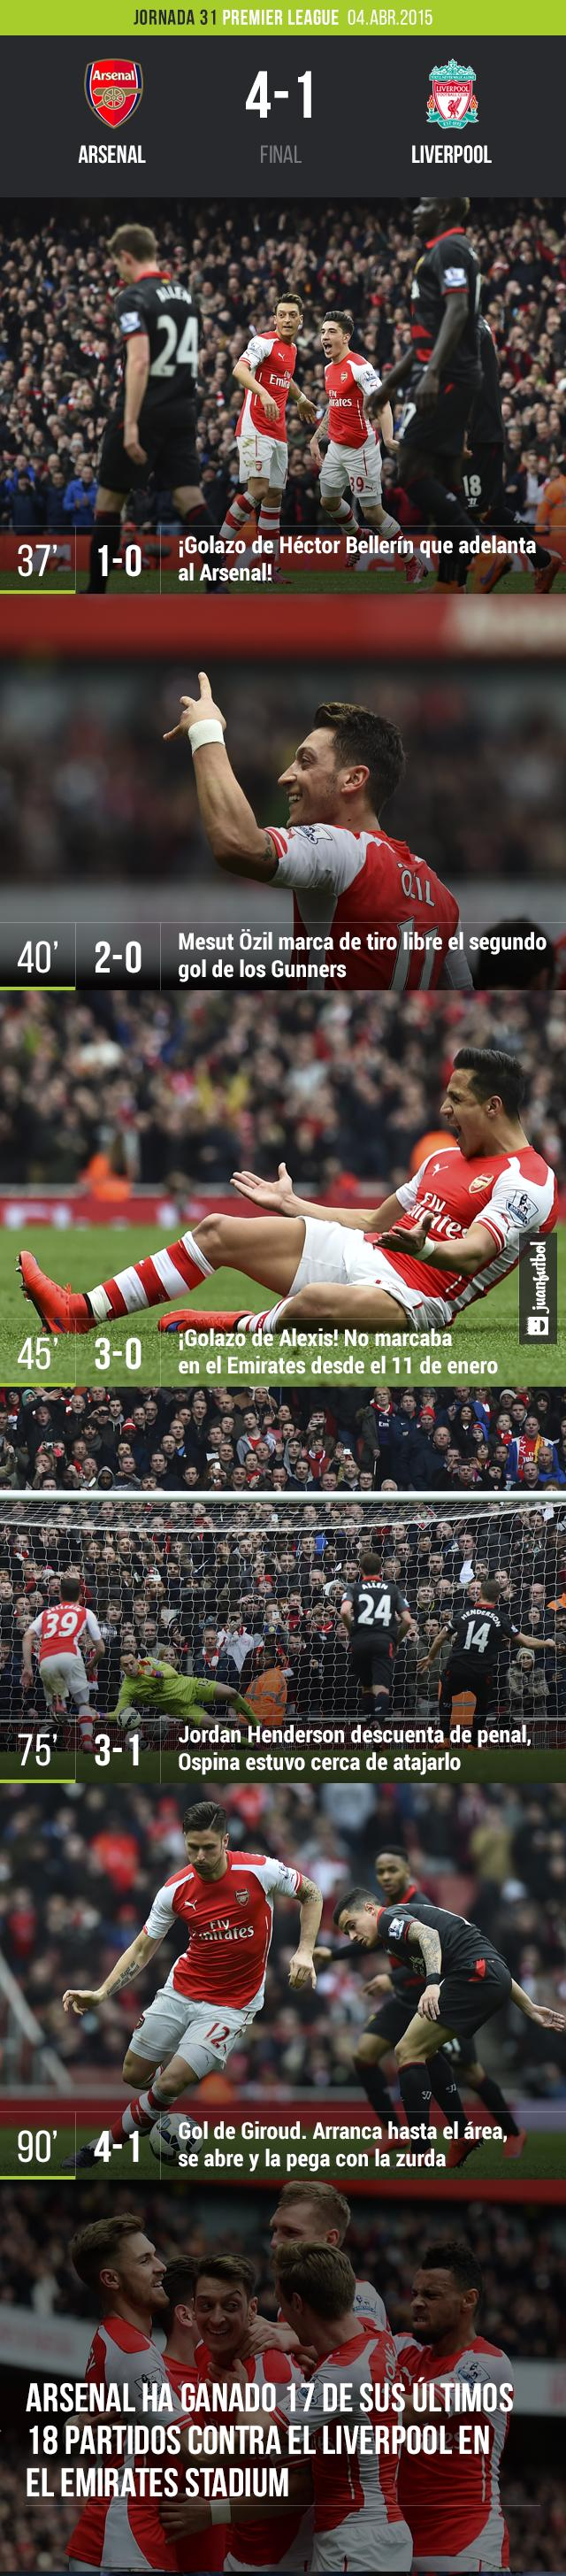 Arsenal vence al Liverpool 4-1, en la fecha 23 de la Premier League.